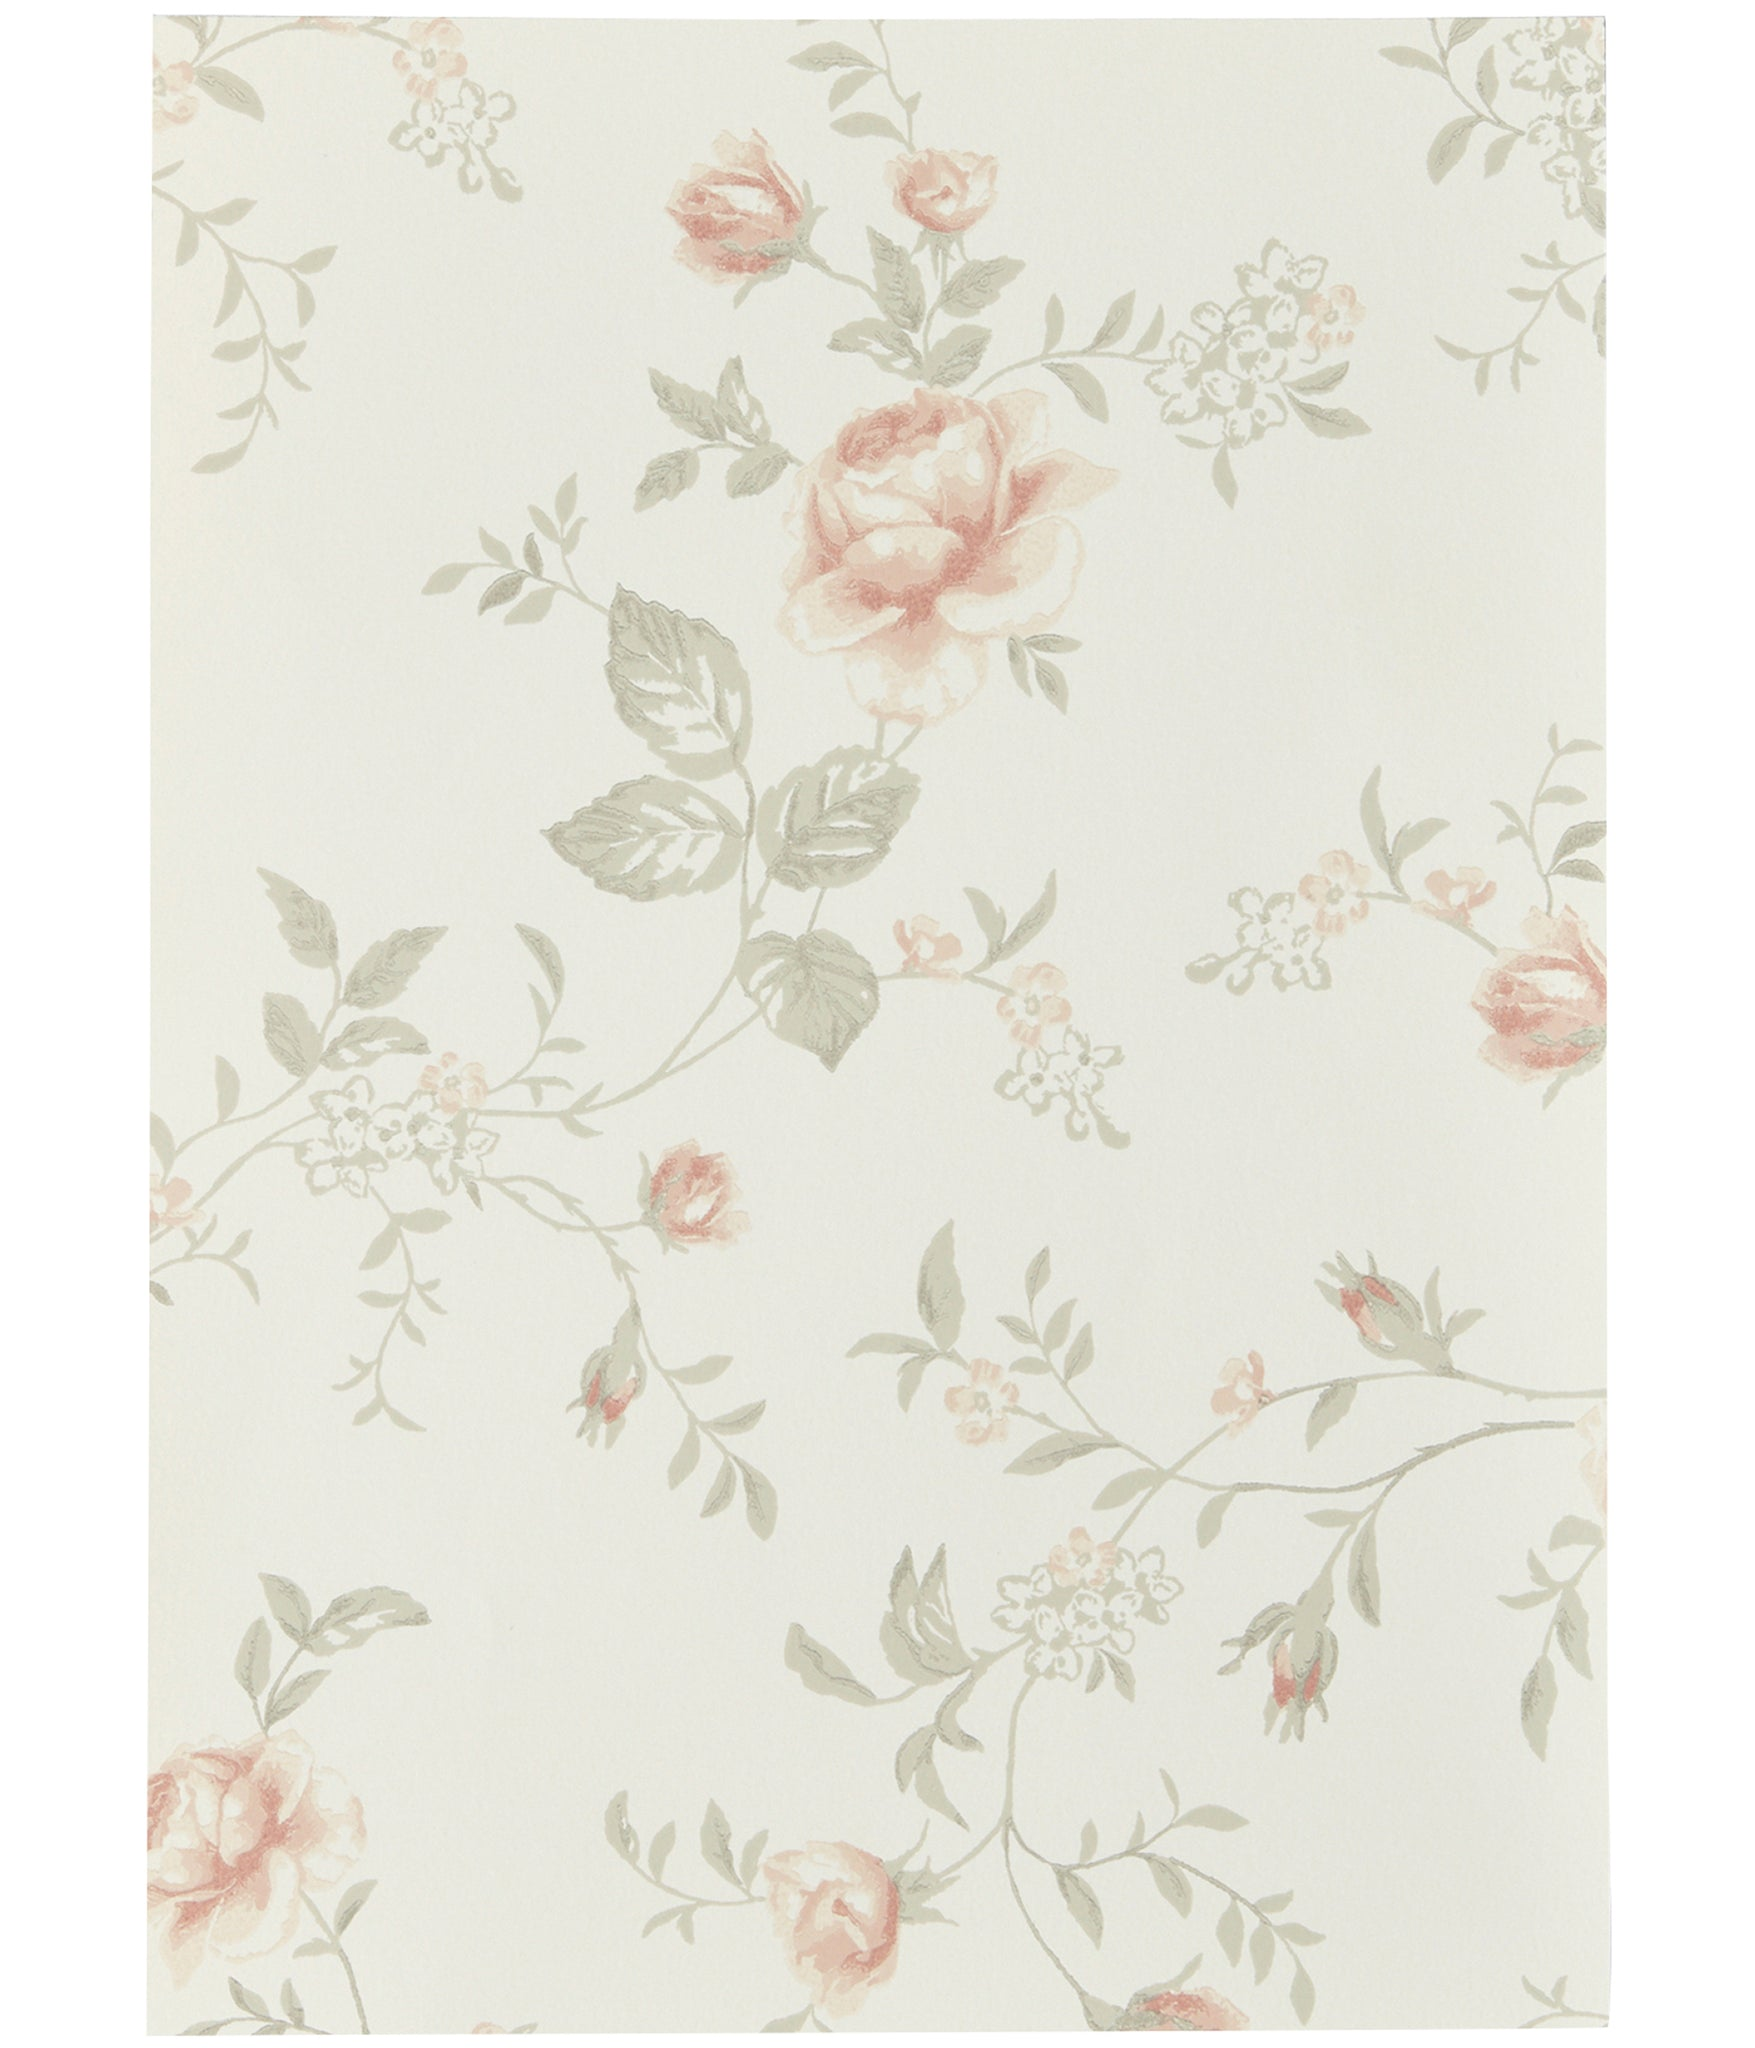 Rose garden wallpaper sample